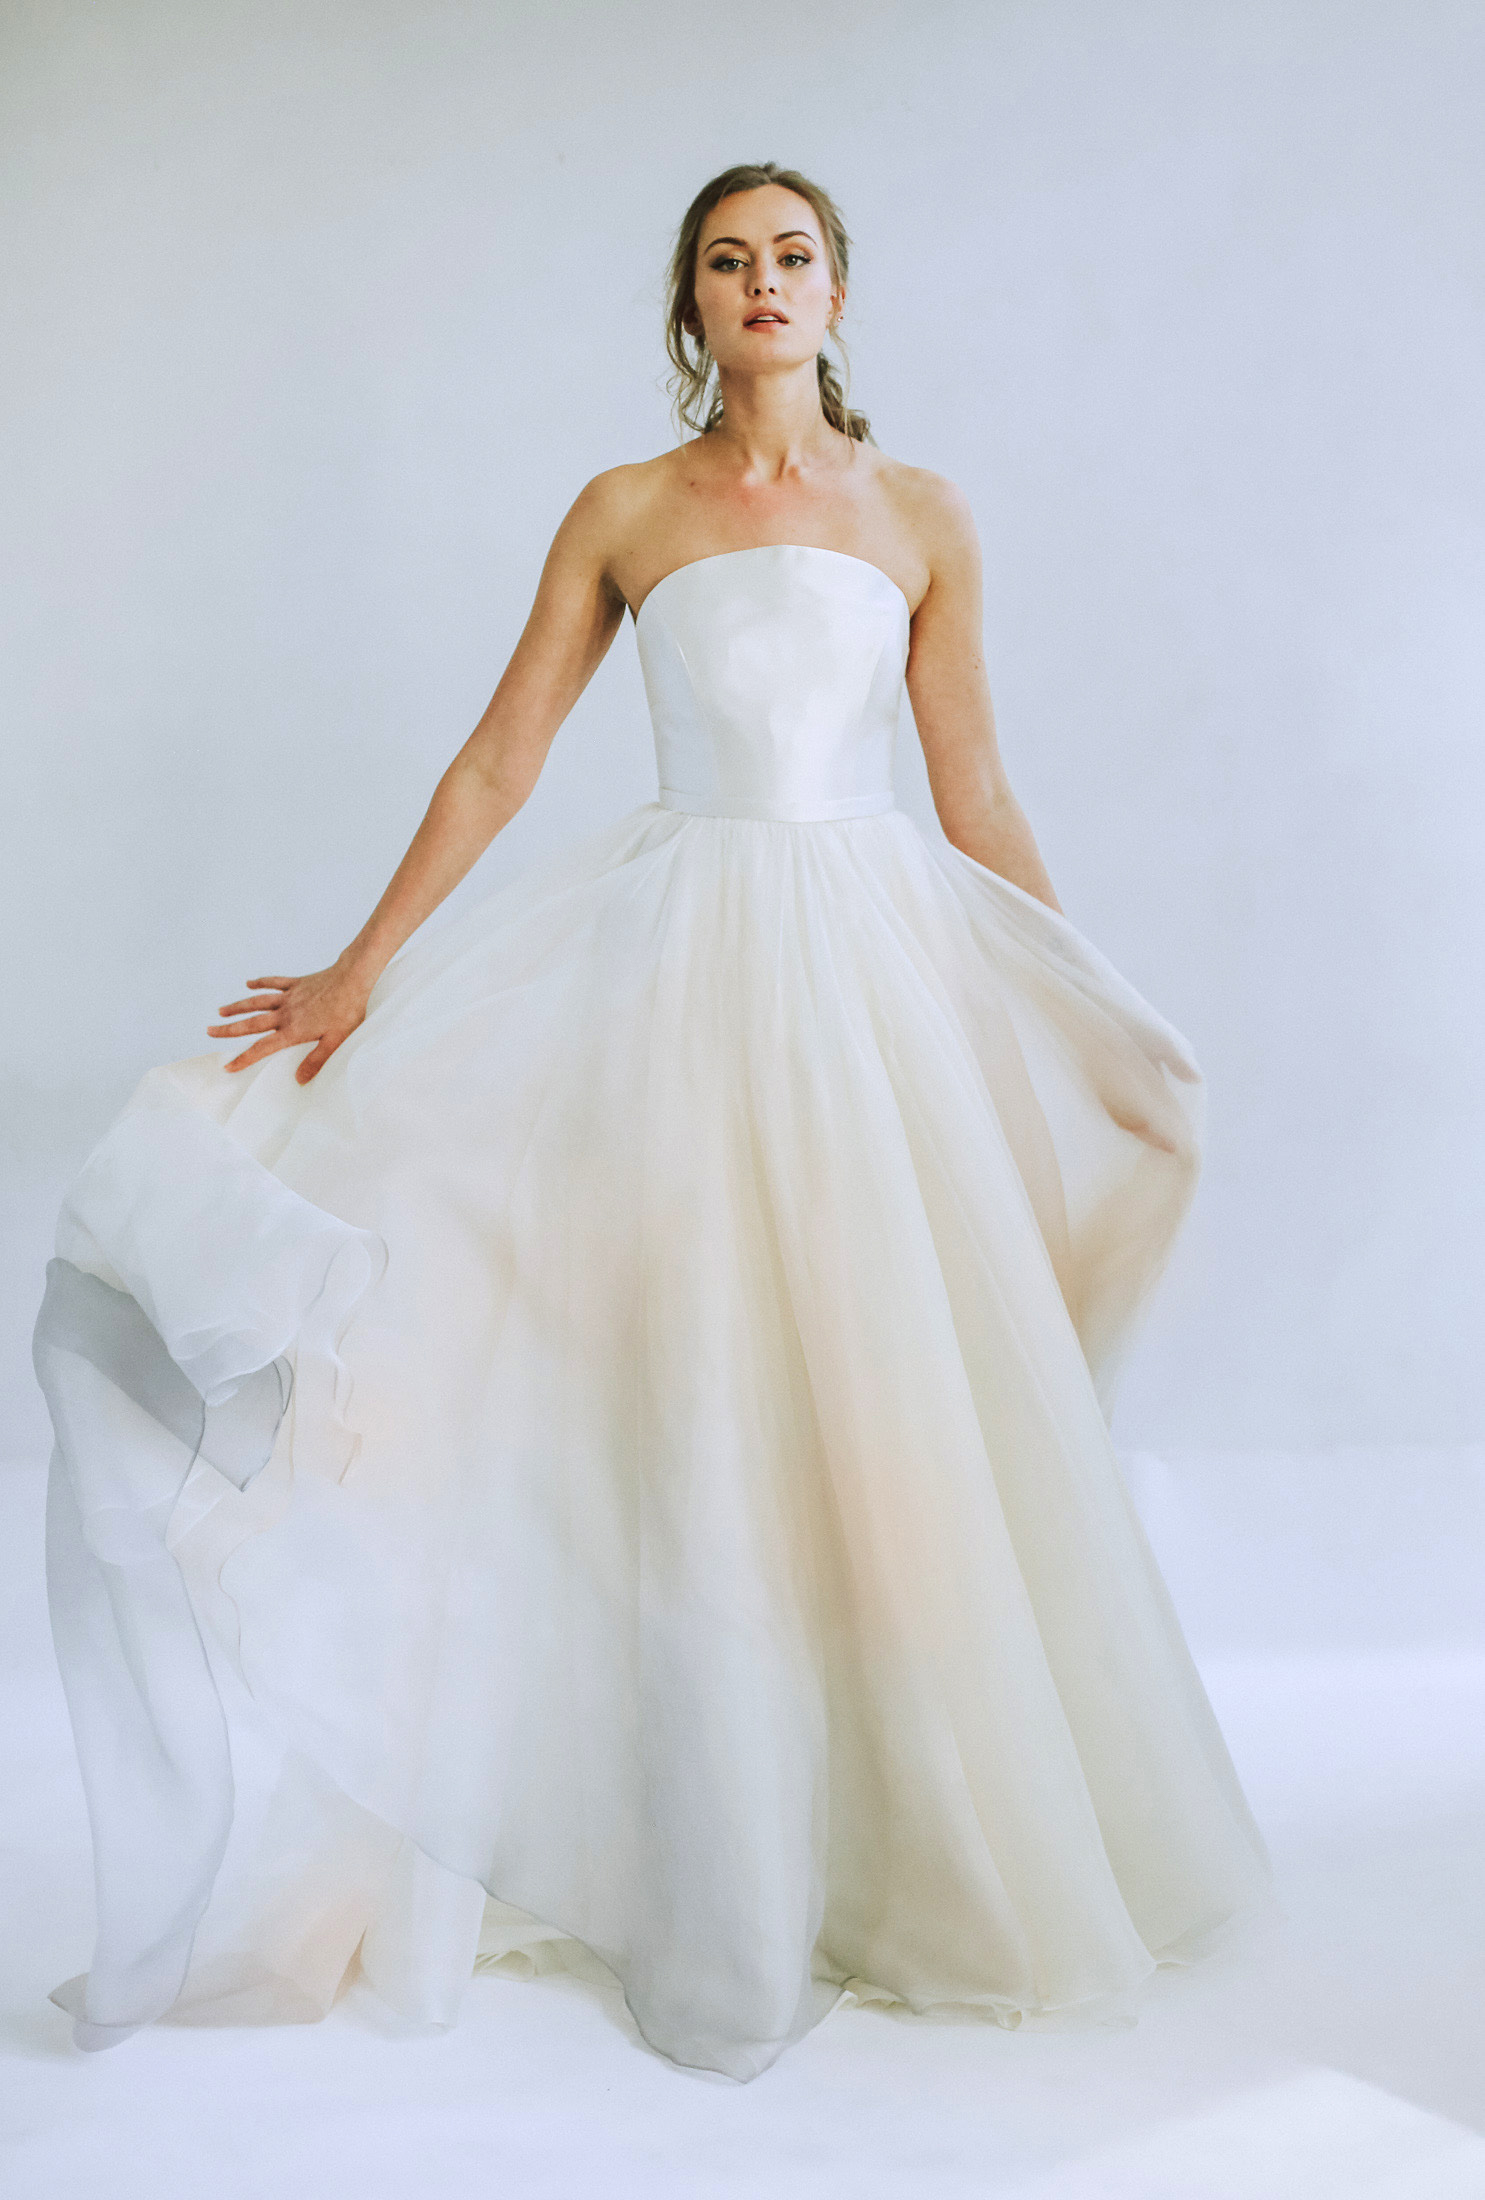 leanna marshall strapless sheer ball gown wedding dress spring 2020